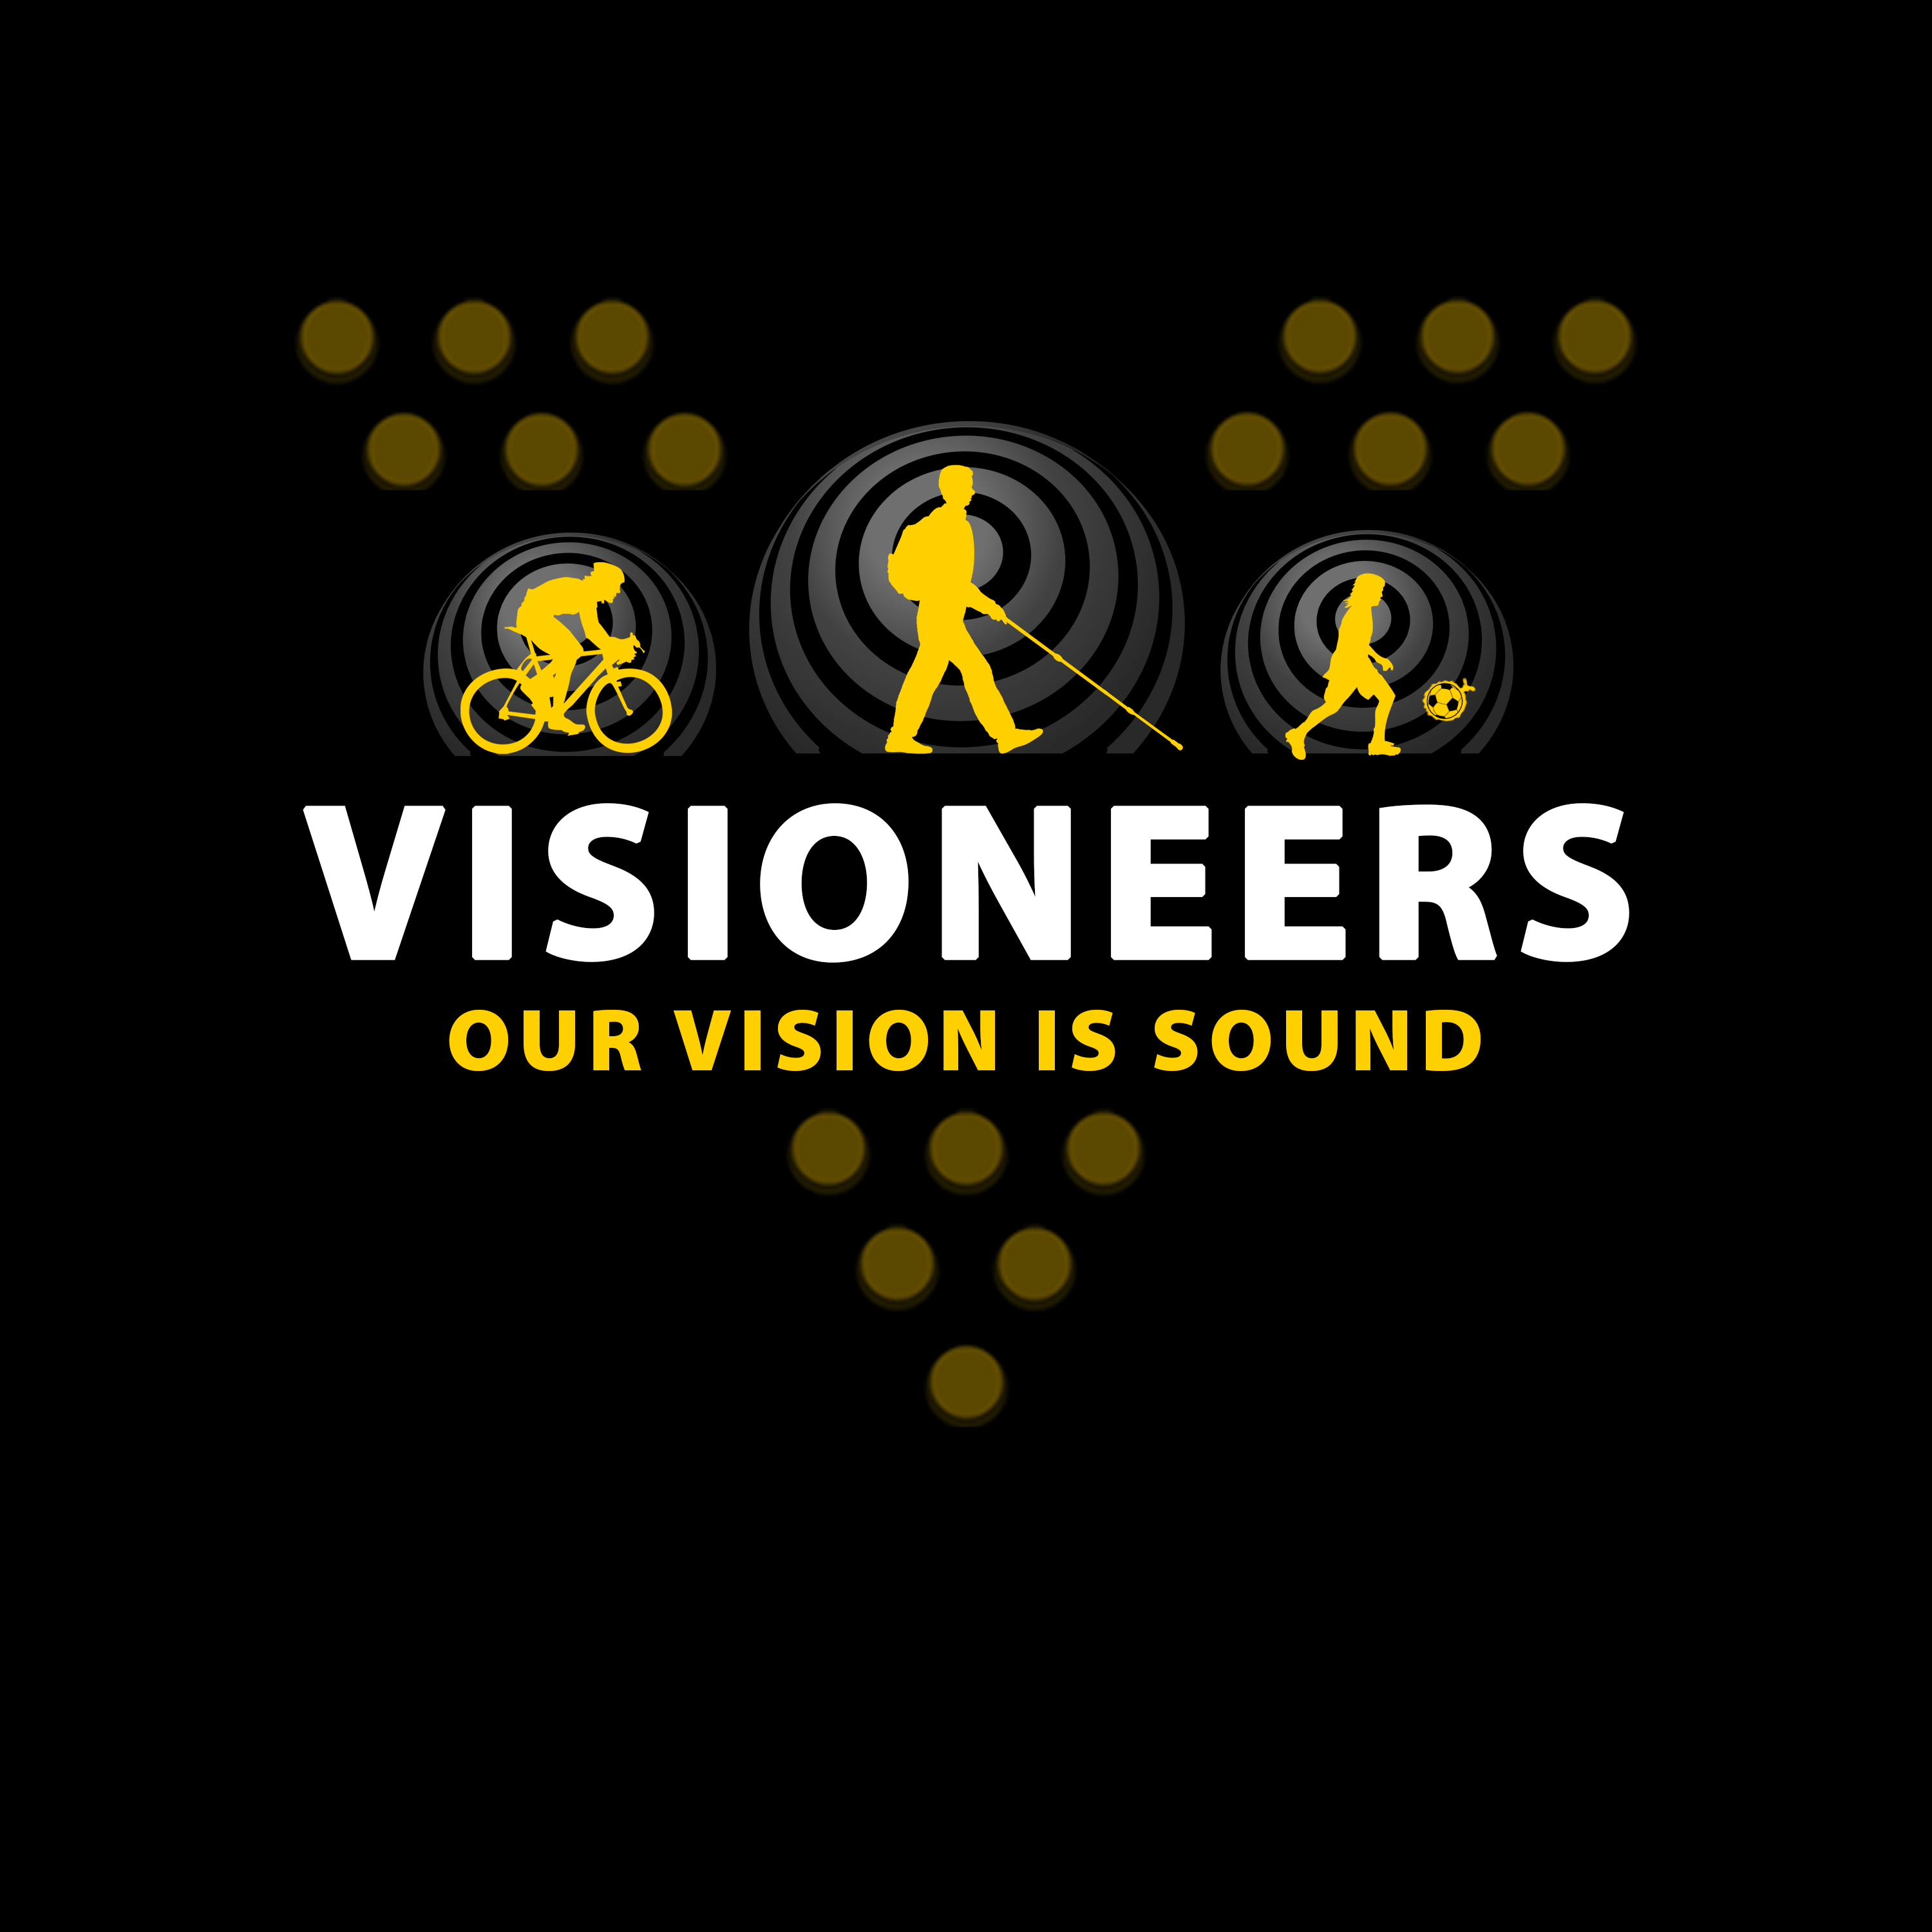 Visioneers 1. Yellow icons against gradient grey rear sonar waves with Our Vision Is Sound in Yellow against muted yellow V dots.